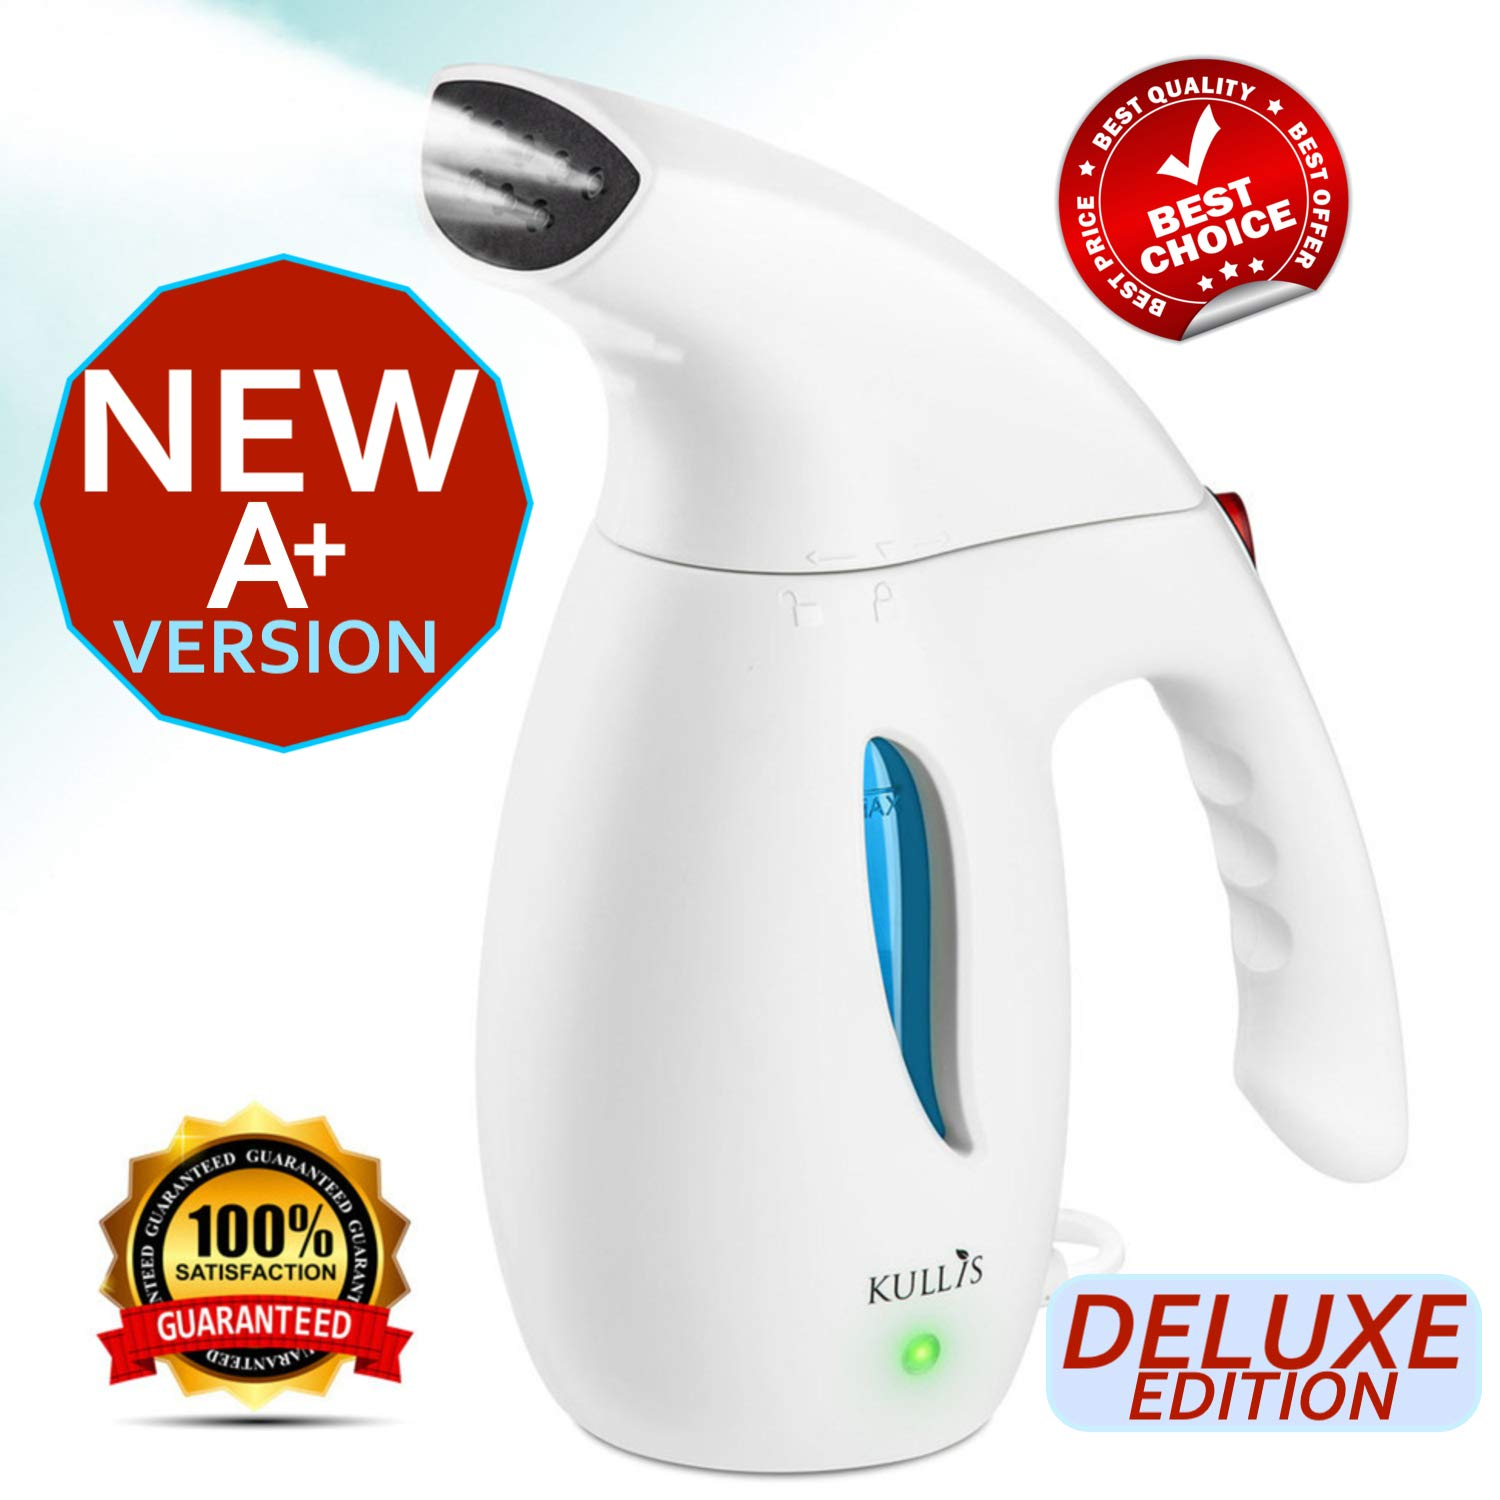 KULLIS Premium [New-Upgraded] - Premium Steamer for Clothes, Clothes Steamer, Portable Handheld Clothing Steamer. 8-in-1 Hand Travel Fabric Steamer, Home Wrinkle Remover, Garment Iron Steamer